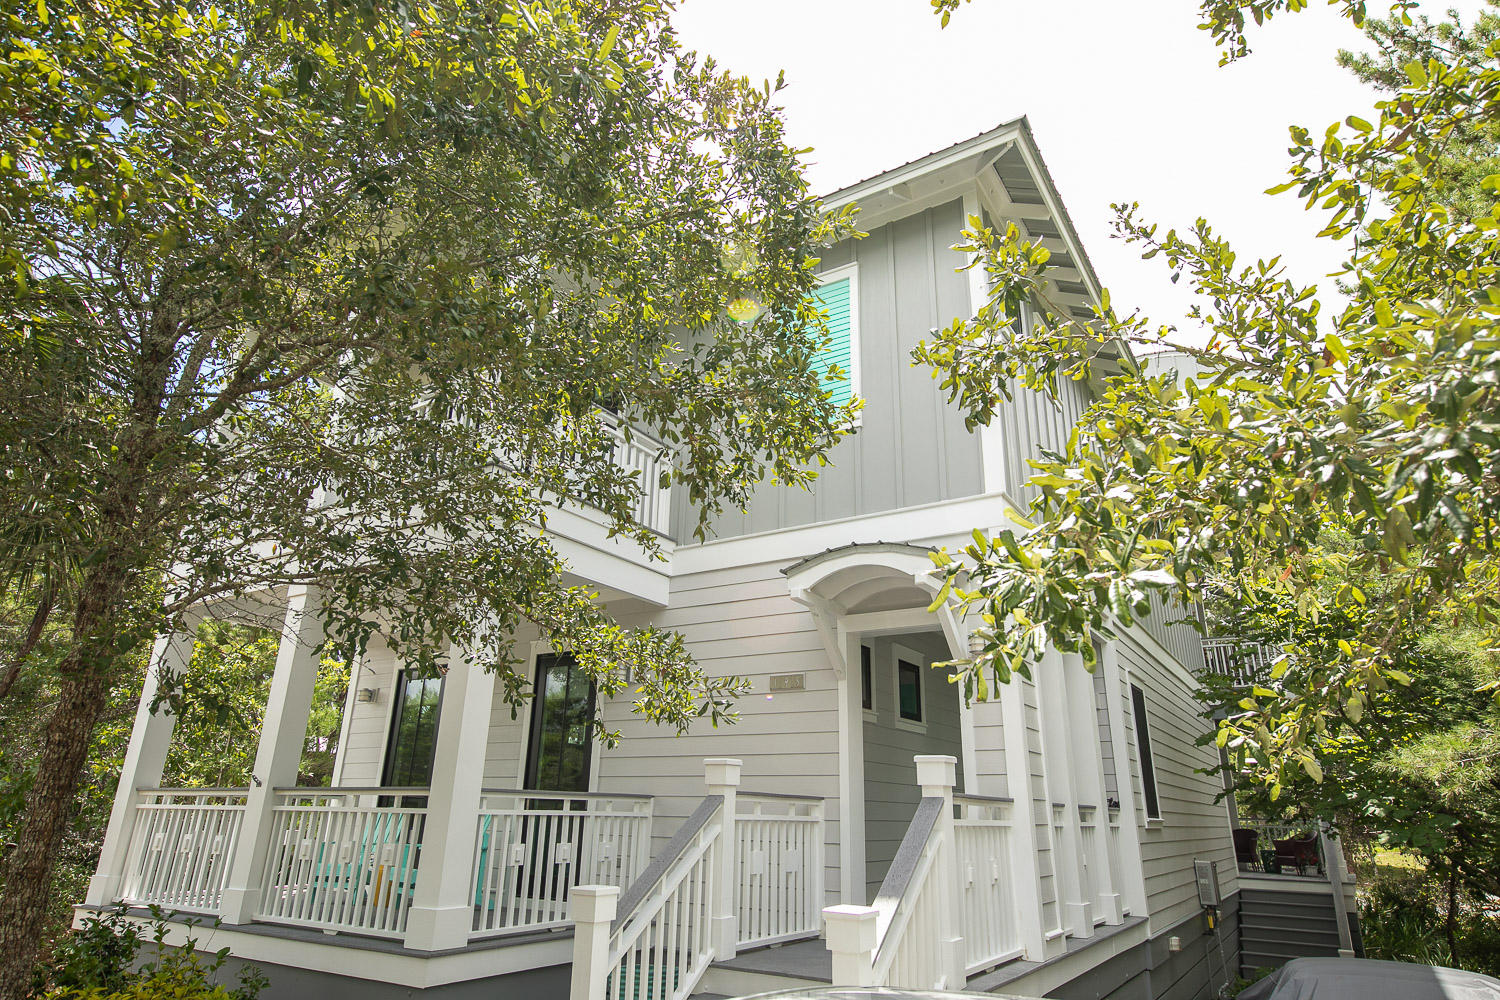 A 3 Bedroom 3 Bedroom The Preserve At Grayton Beach Home